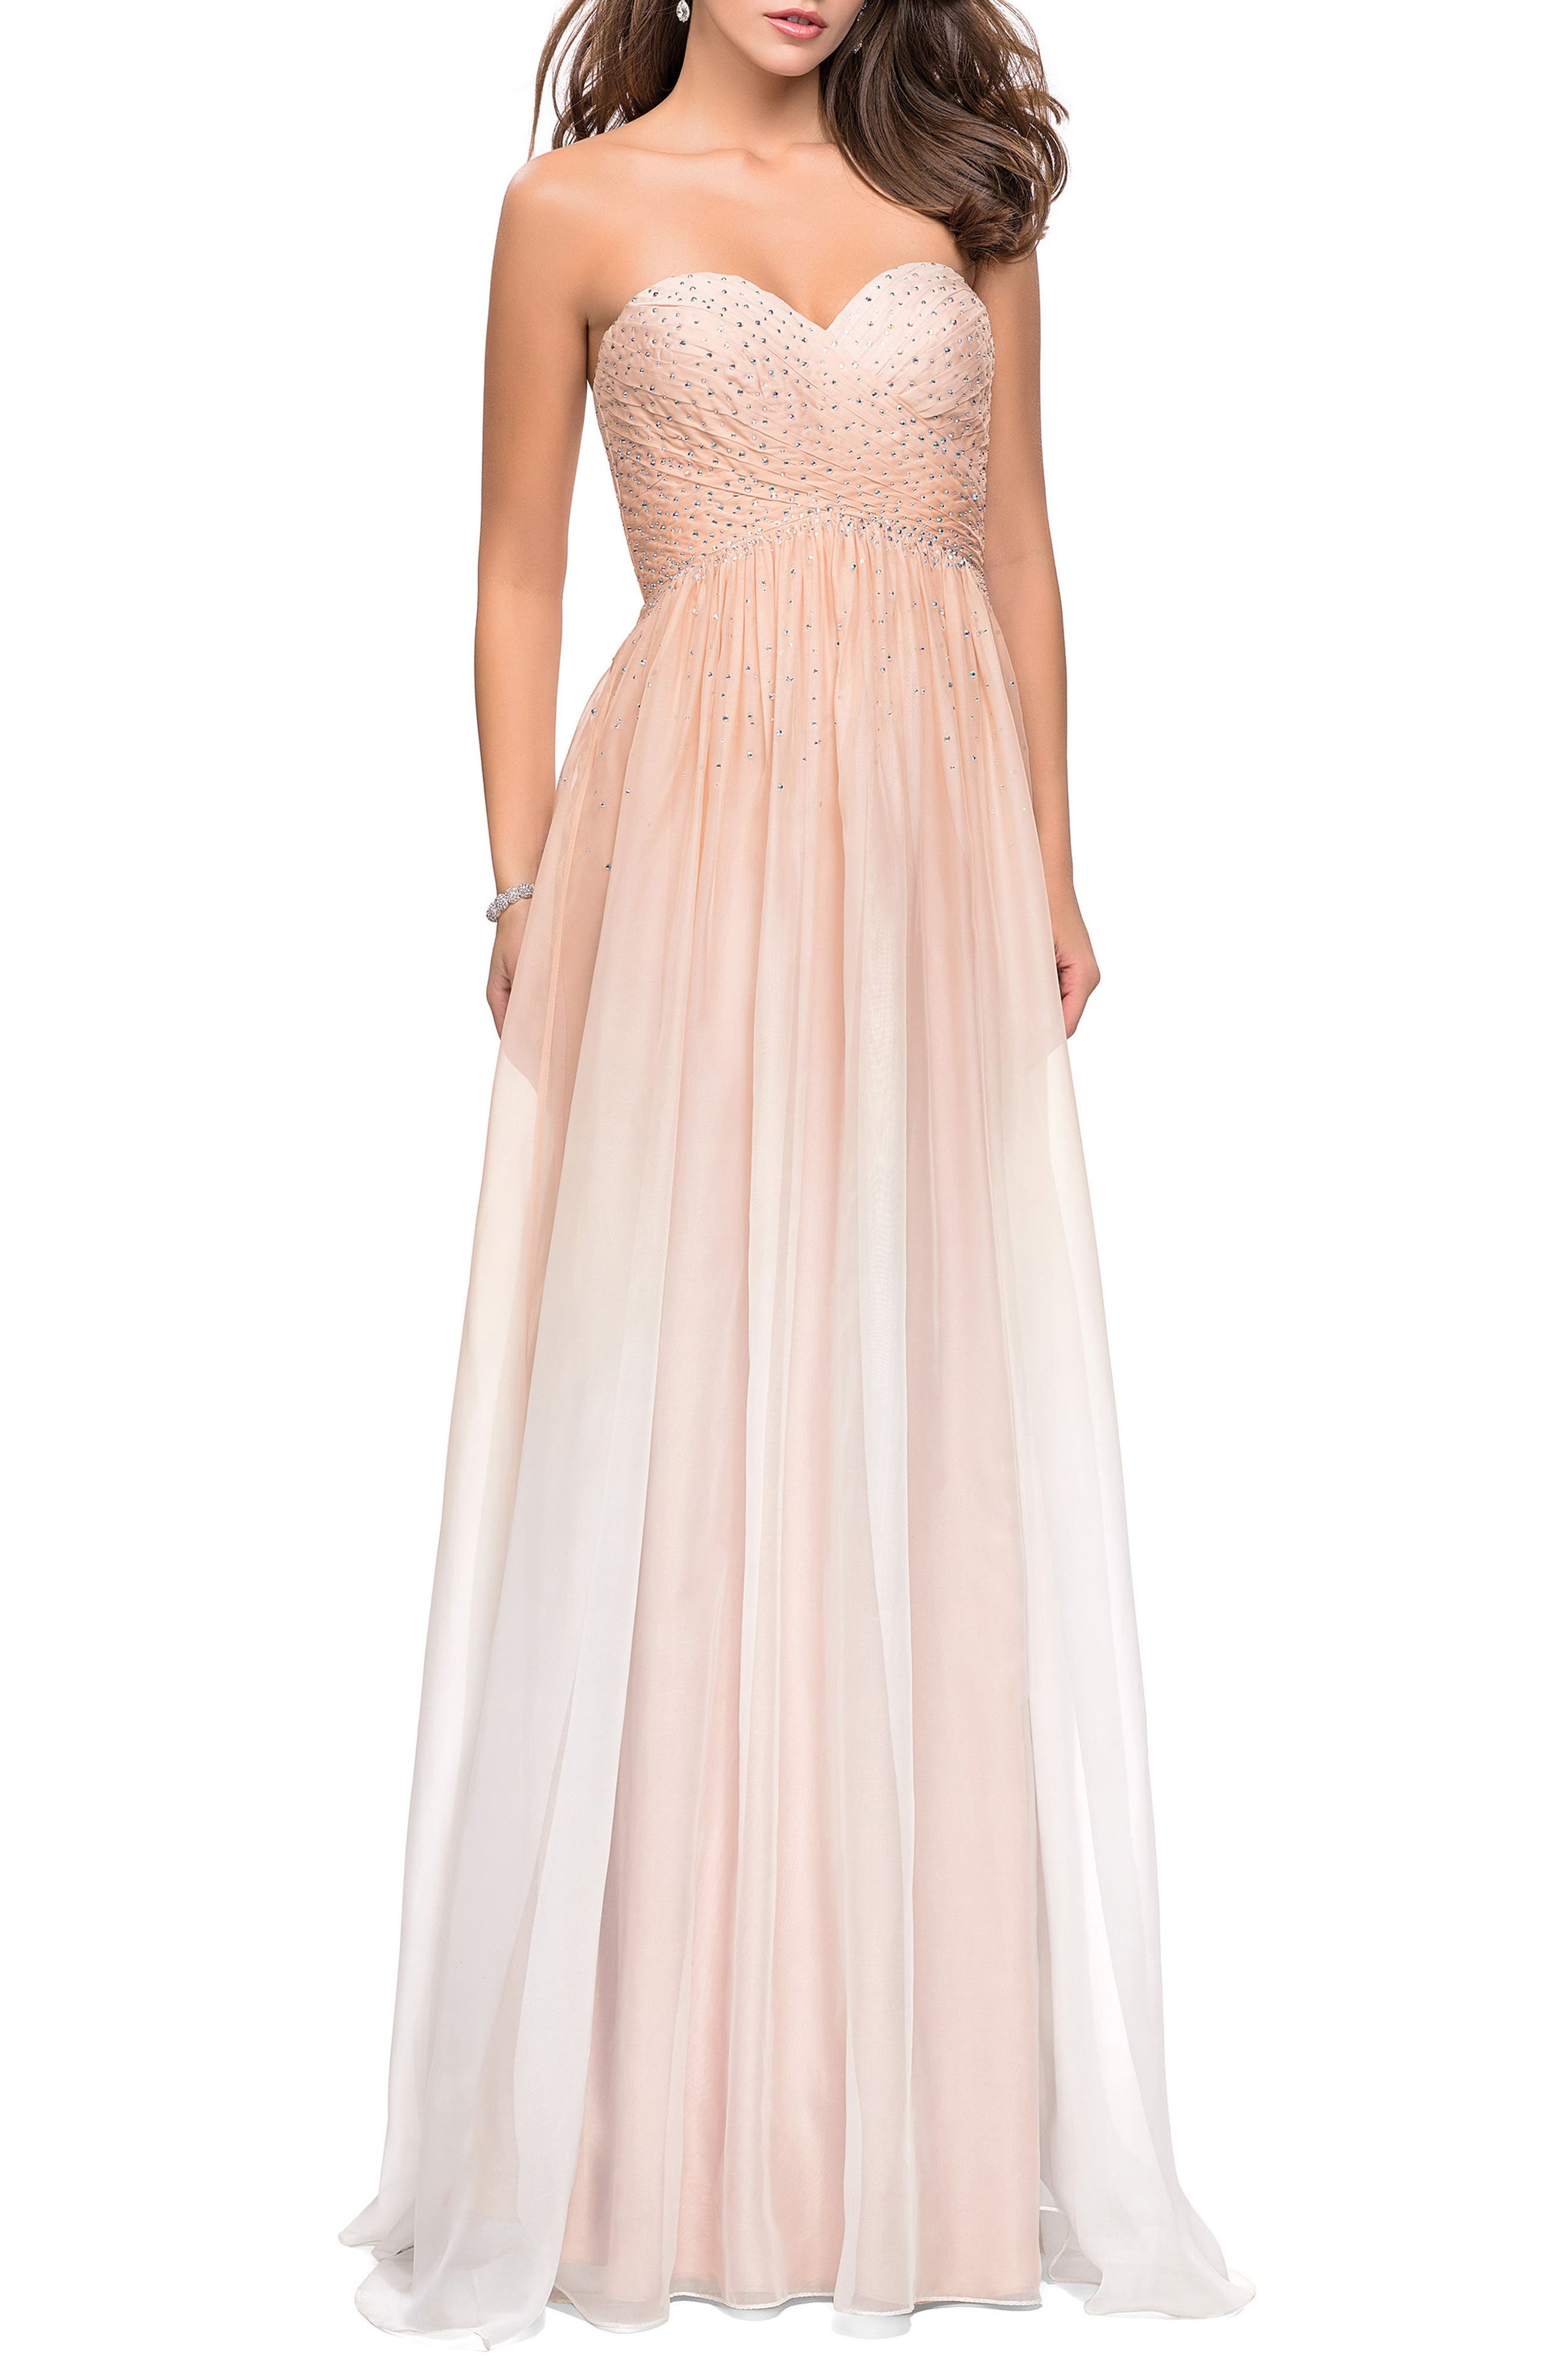 Strapless Chiffon Gown,                             Main thumbnail 1, color,                             Nude